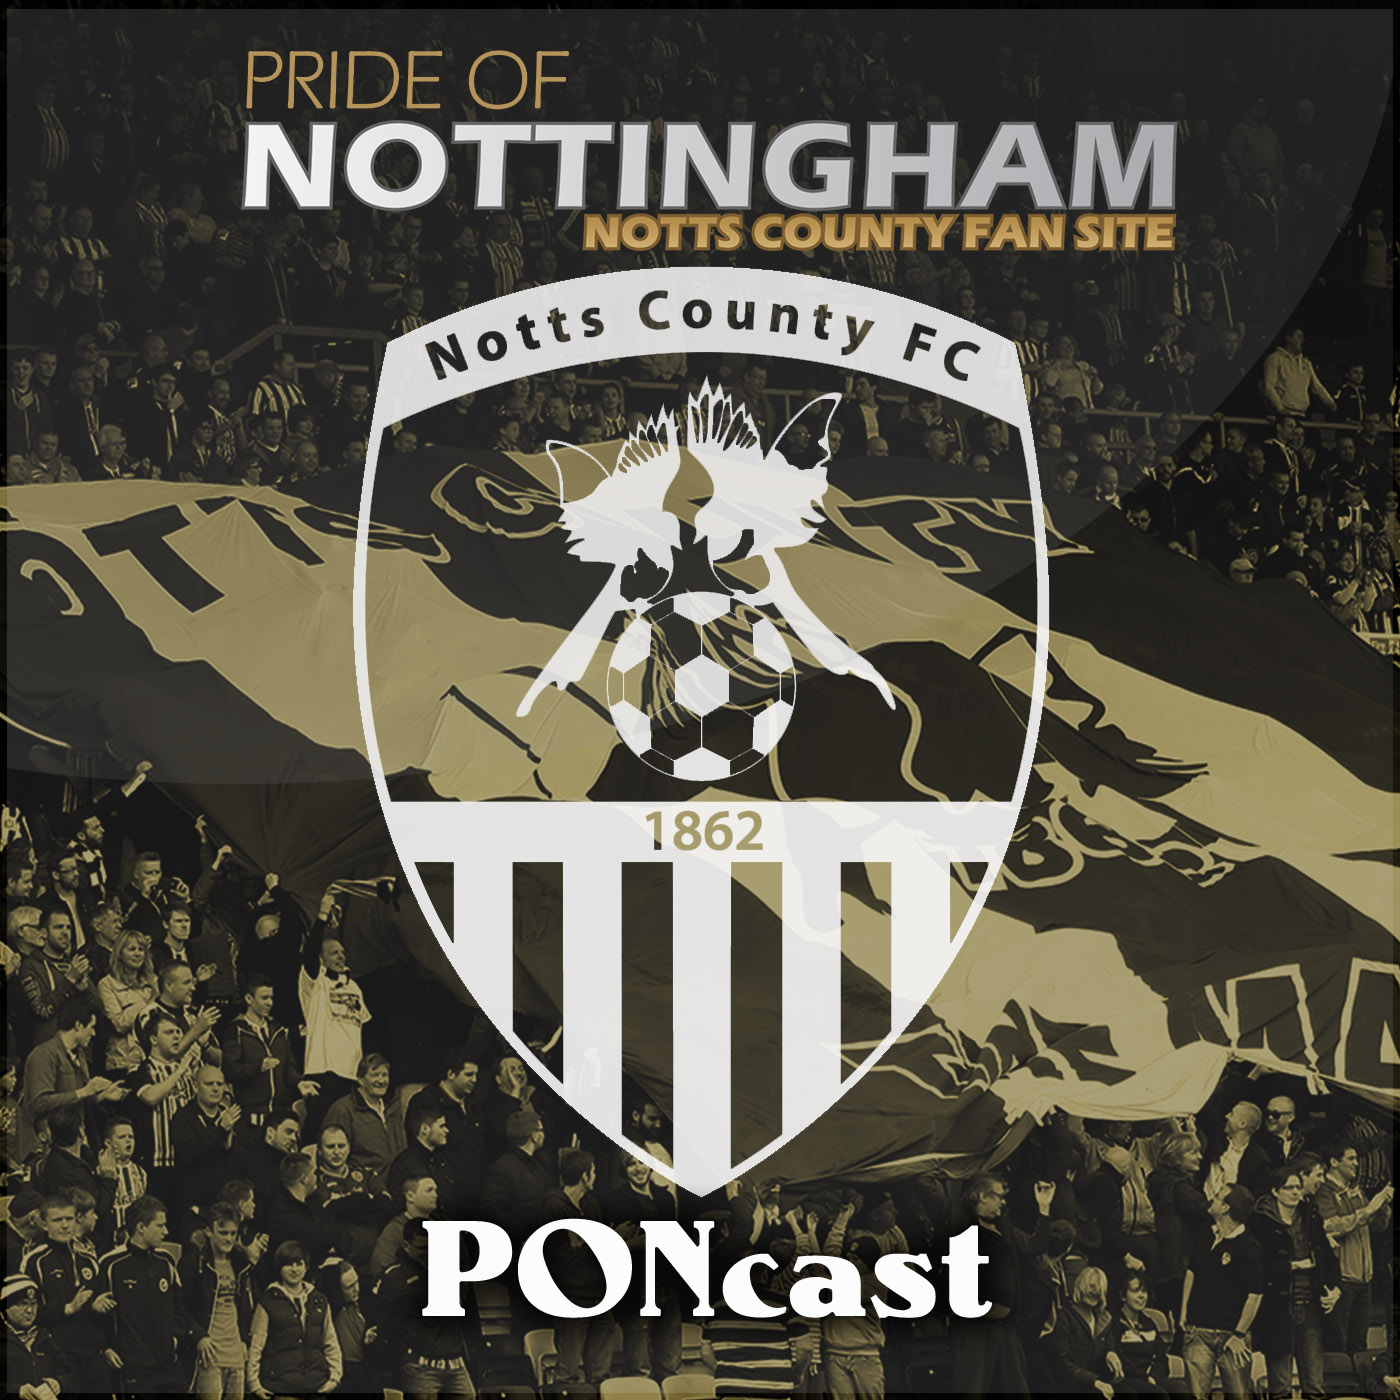 Pride of Nottingham's PONcast